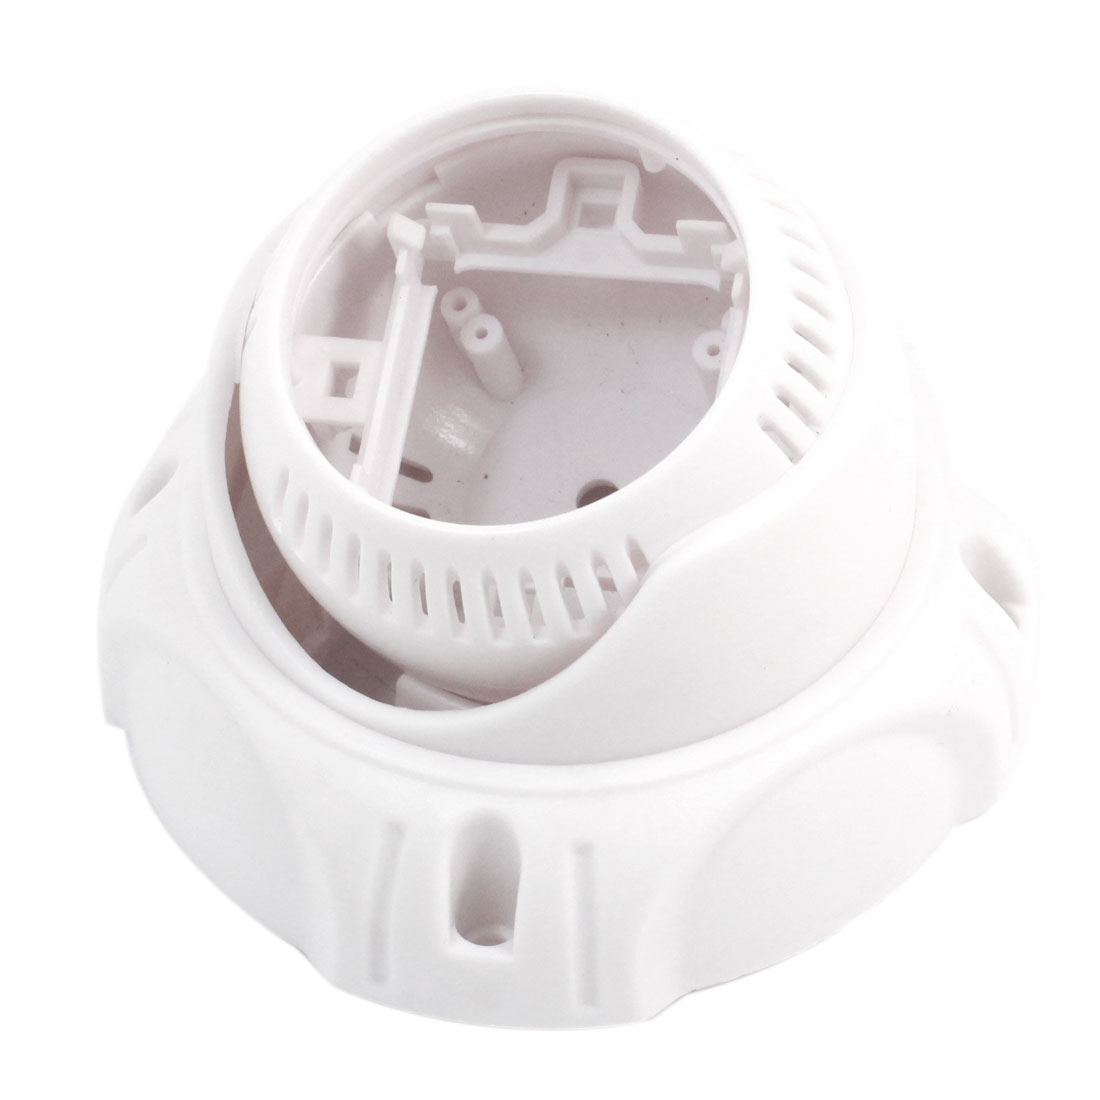 "Surveillance White Plastic CCTV Dome Camera Housing Case 4.2"" Dia"